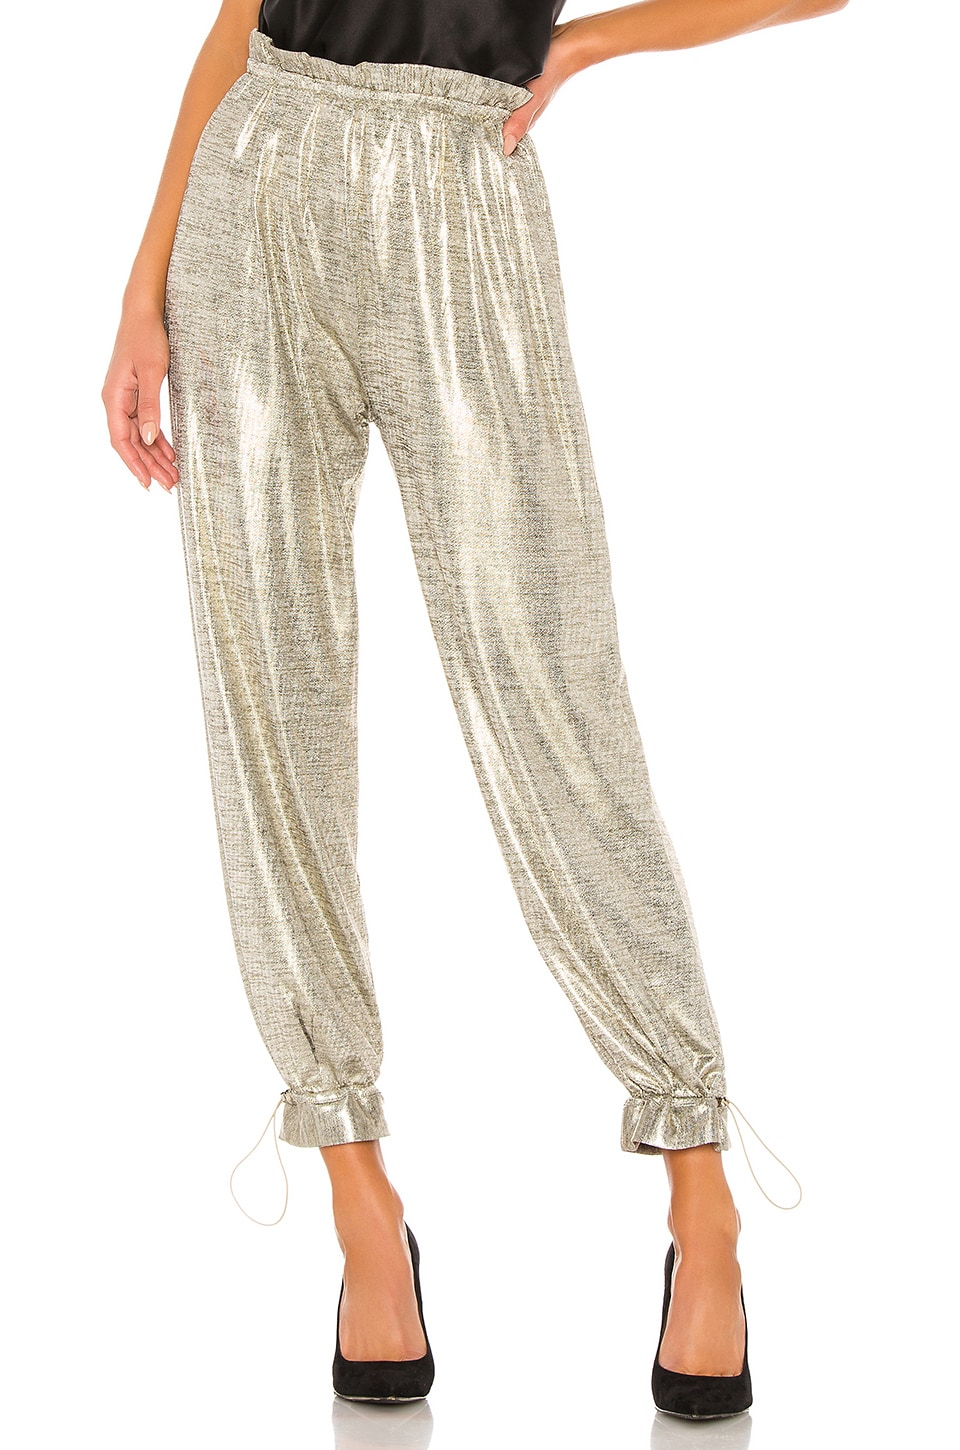 House of Harlow 1960 x REVOLVE Tamar Pant in Pewter